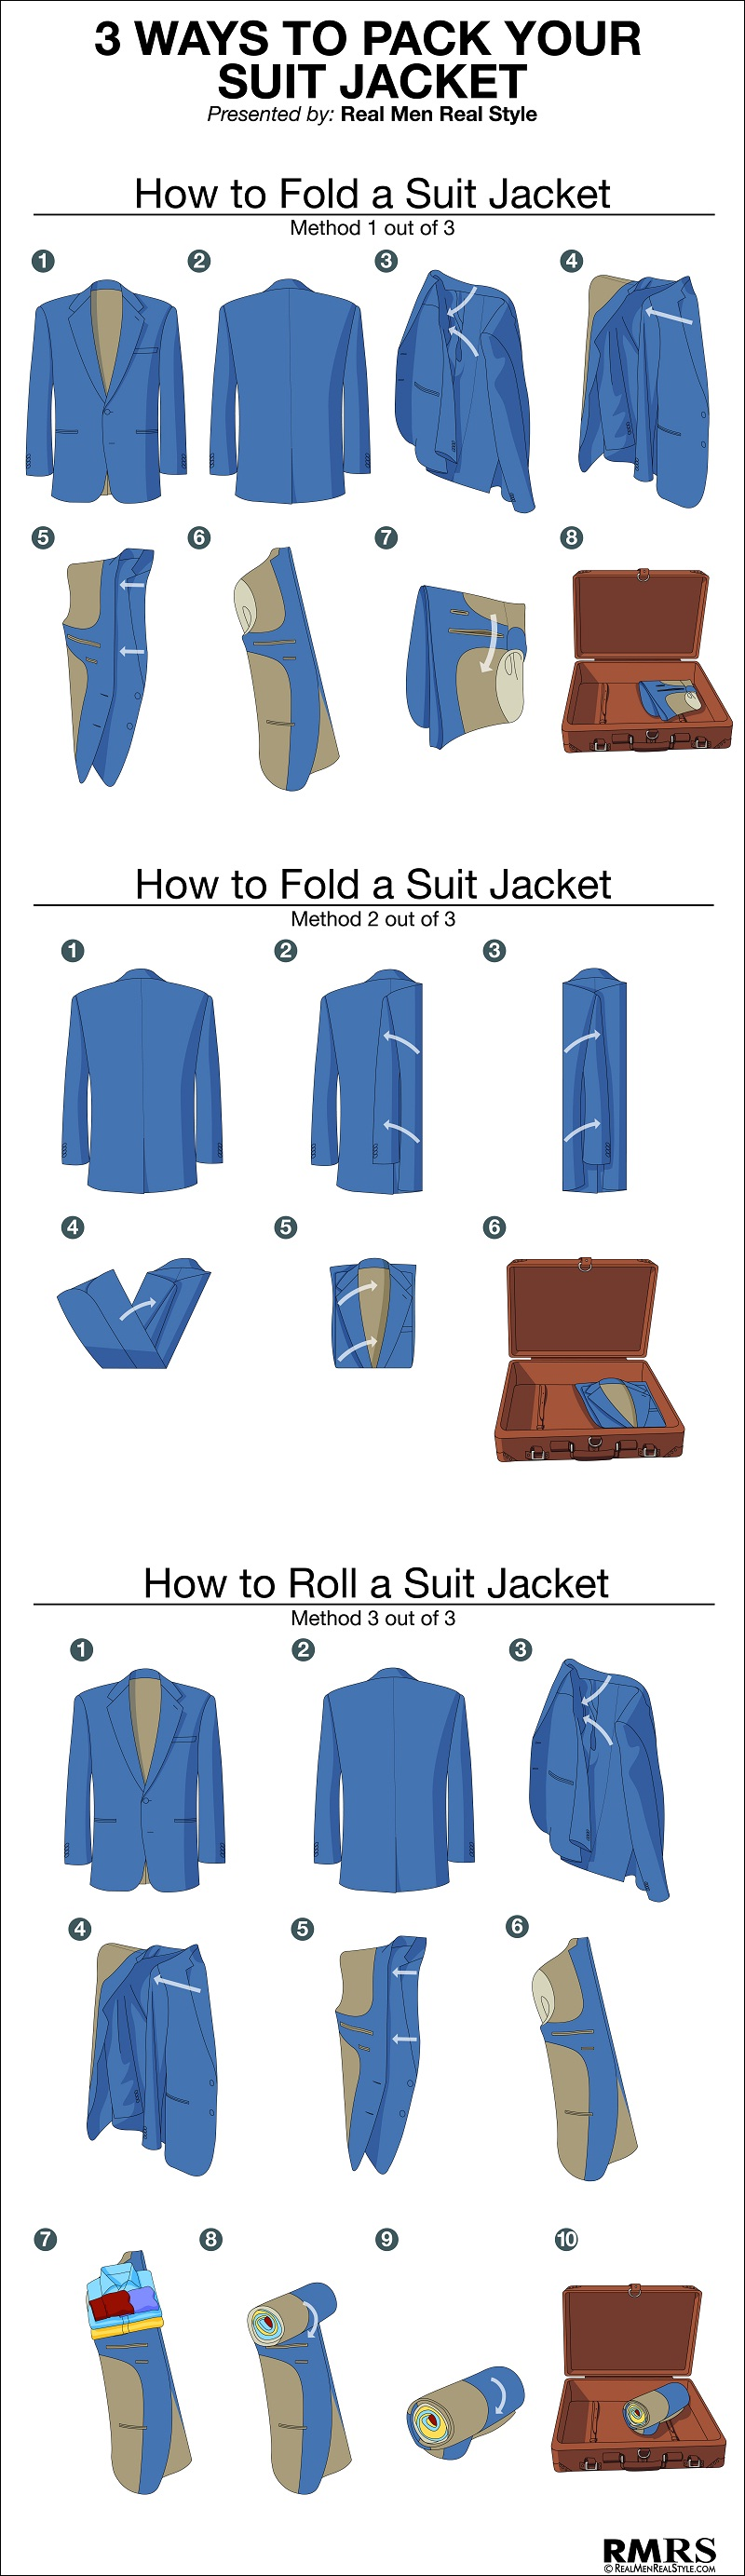 how to fold and roll a suit jacket for travel so it doesn't wrinkle